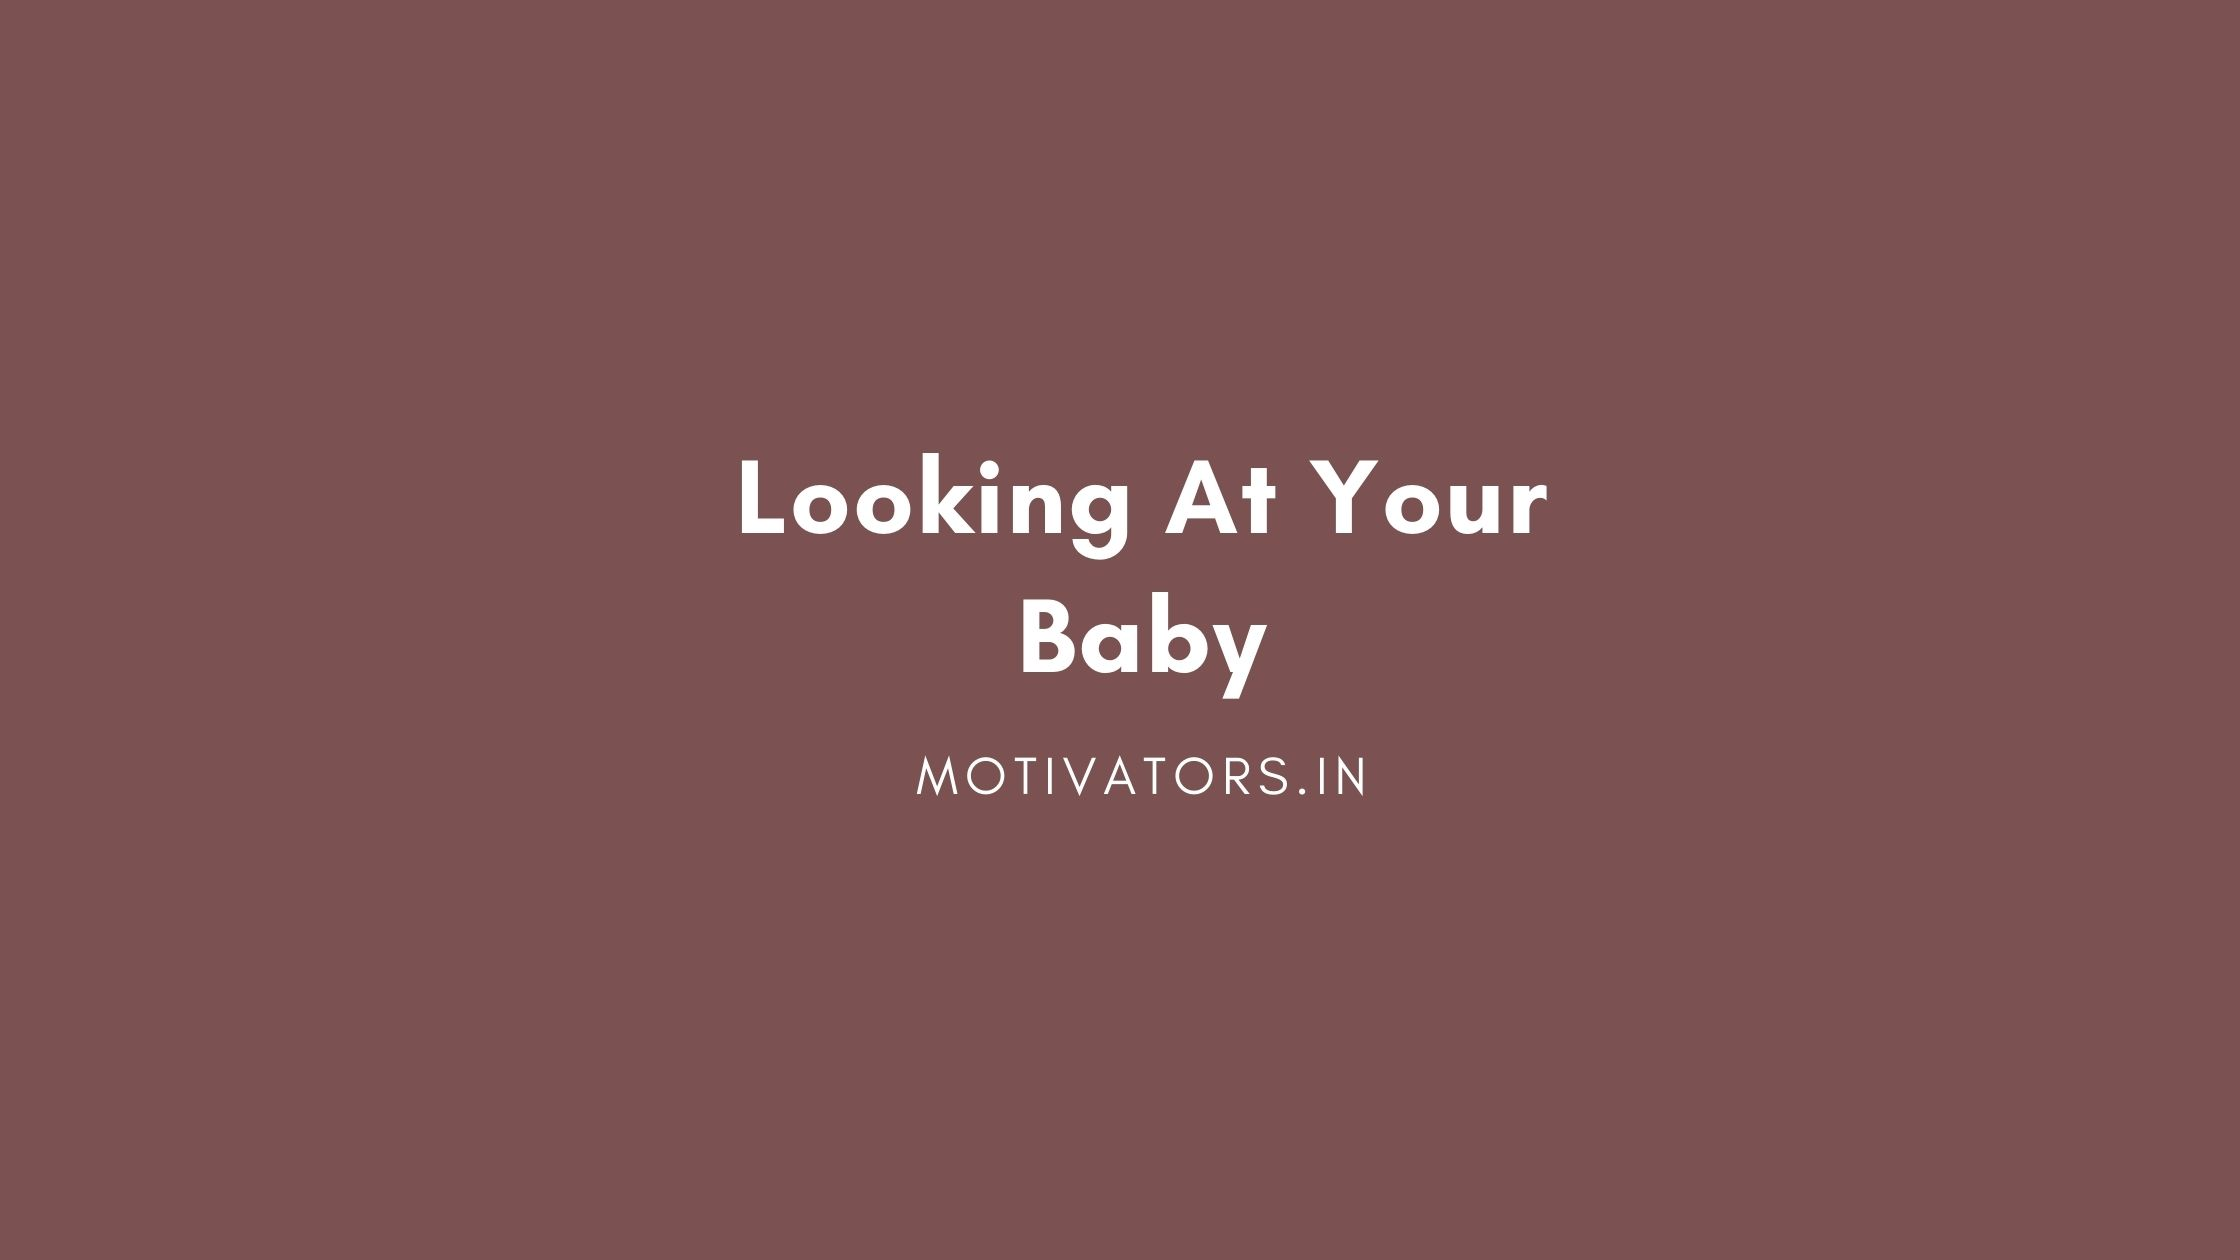 Looking At Your Baby